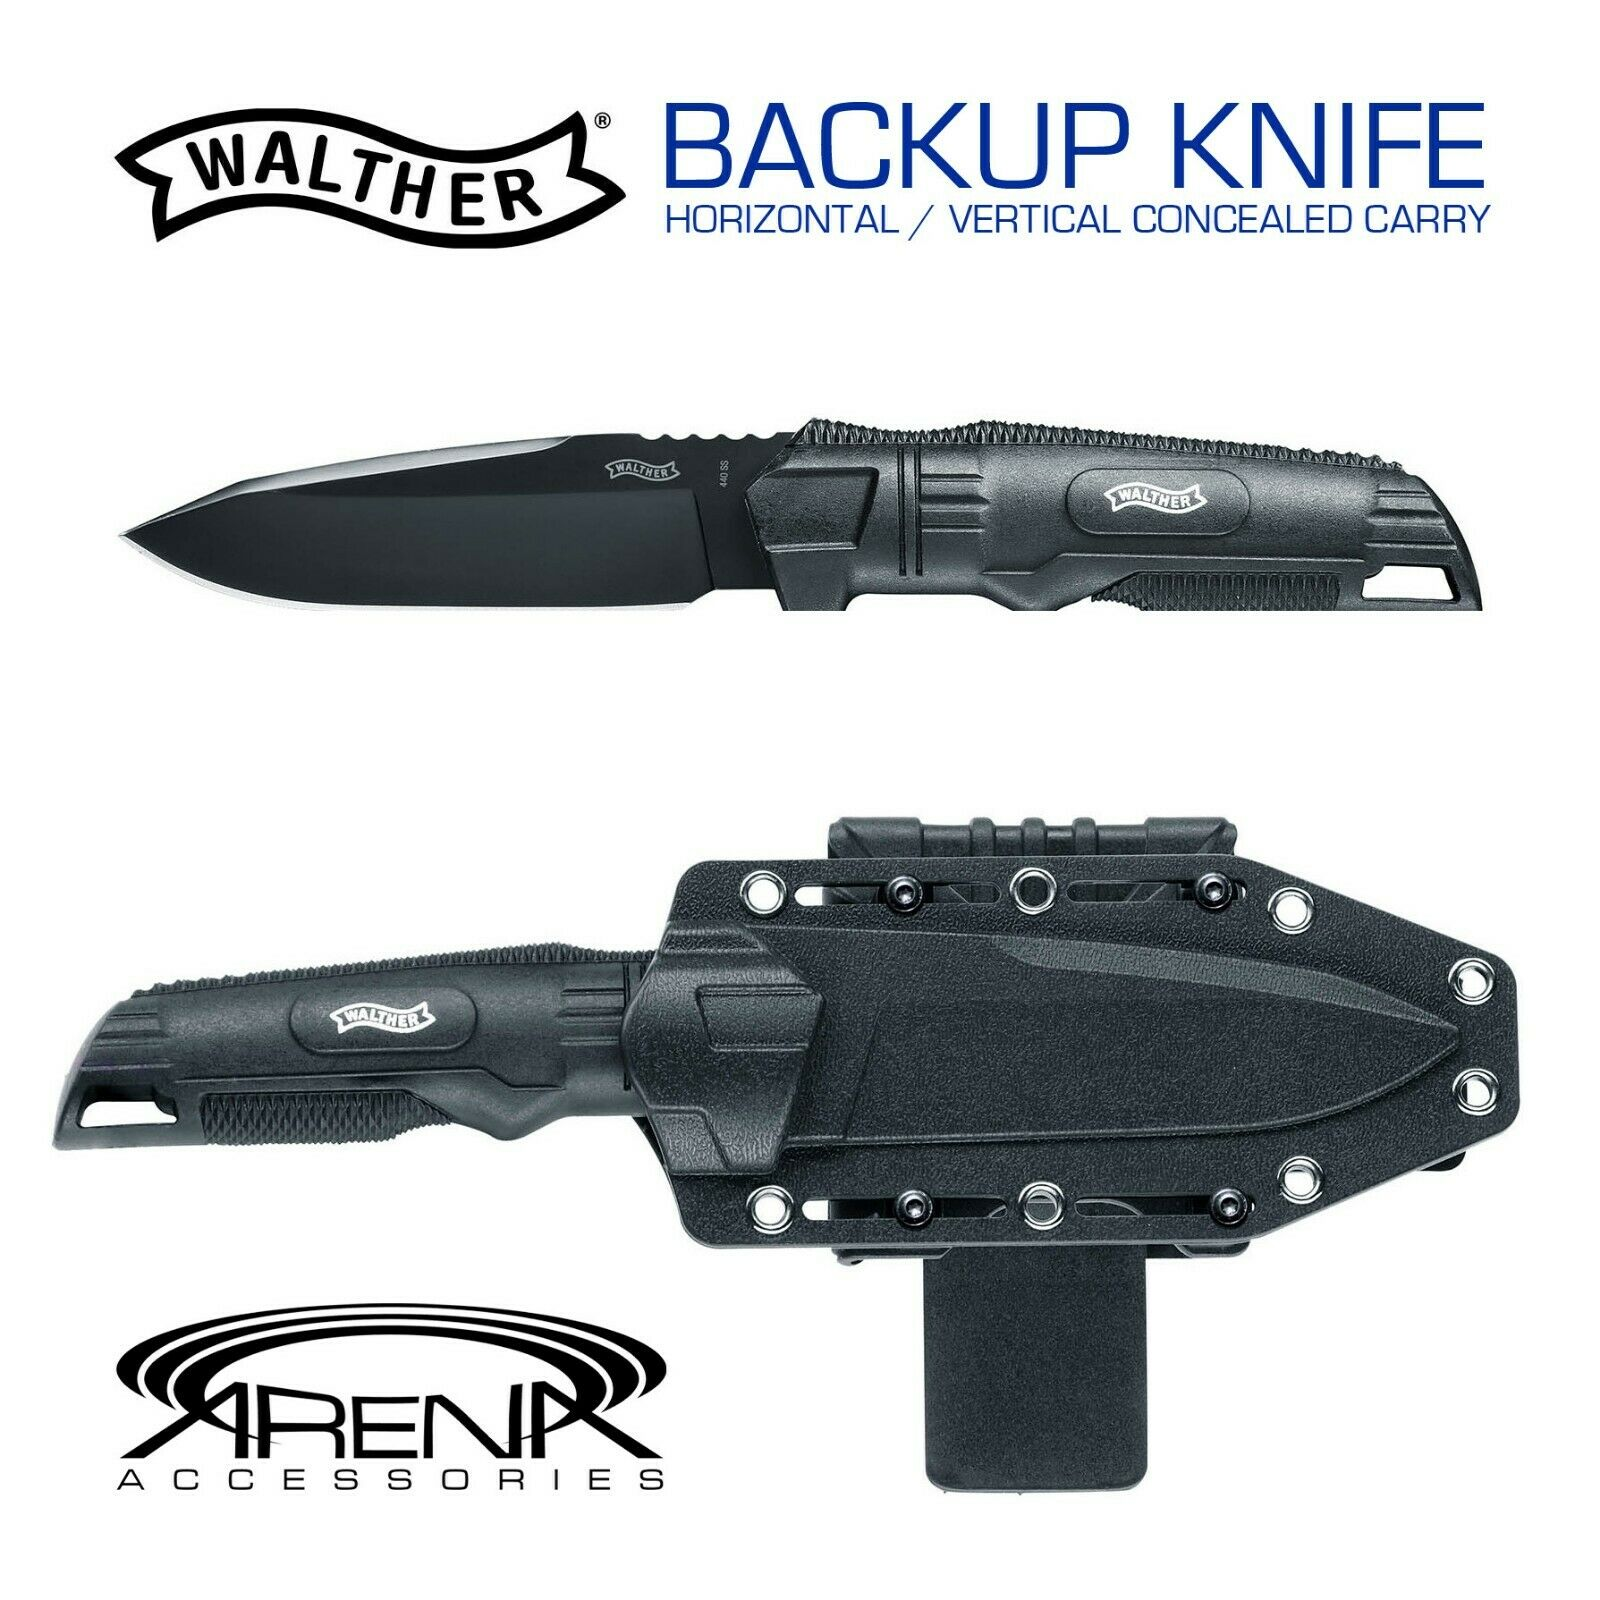 Walther BackUp Knife Horizontal Vertical Mount Conceal Carry Sheath Fixed Blade